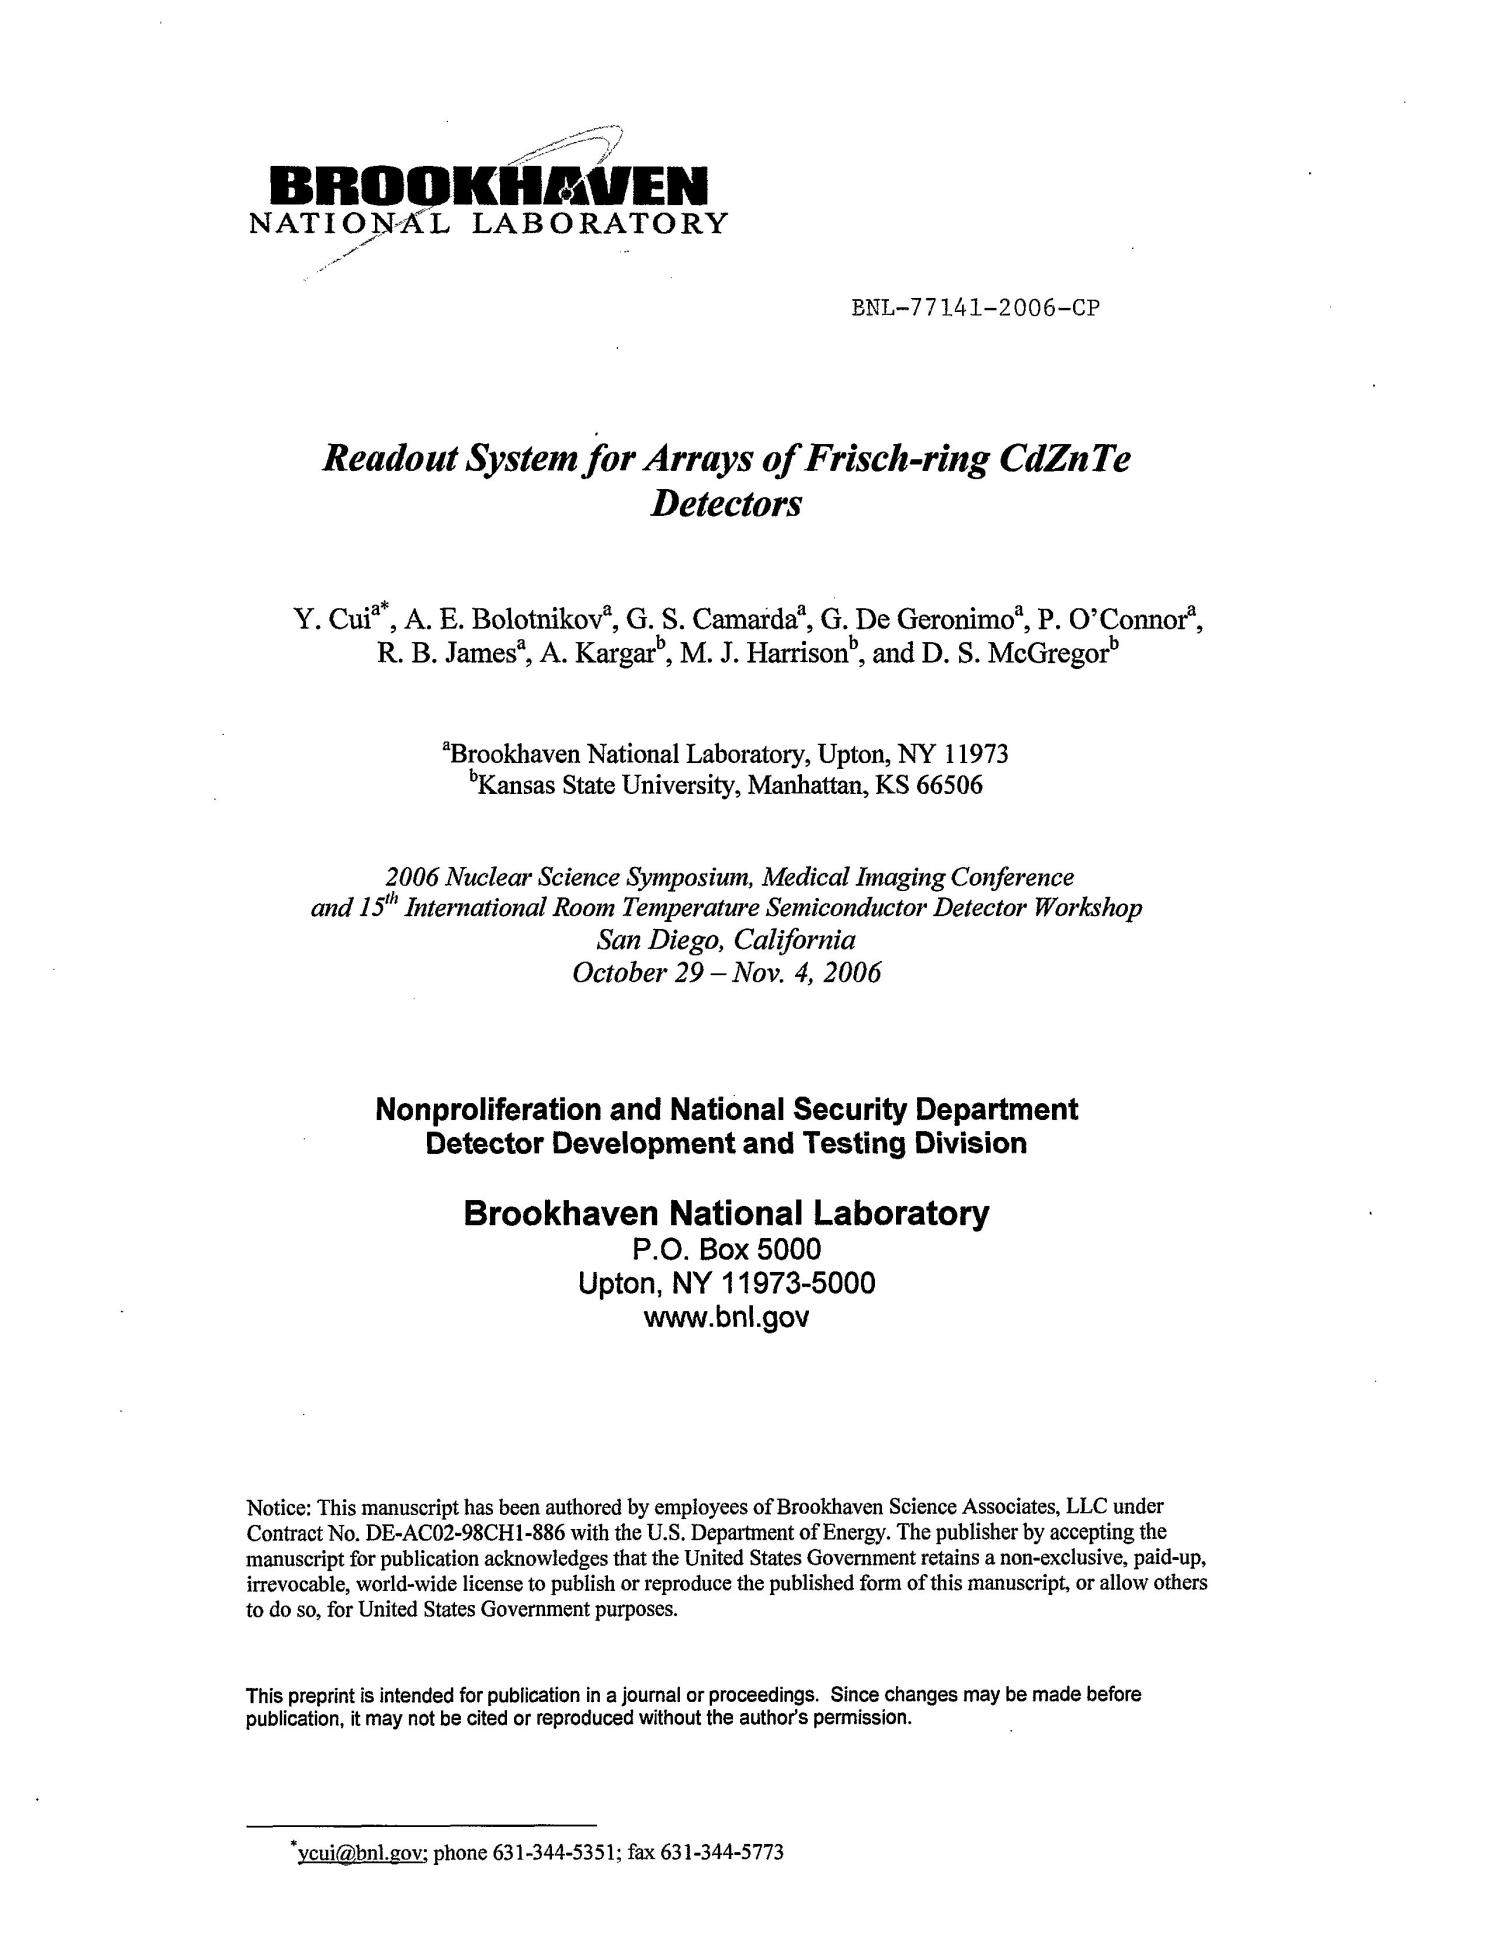 READOUT SYSTEM FOR ARRAYS OF FRISCH-RING CDZNTE DETECTORS.                                                                                                      [Sequence #]: 1 of 7